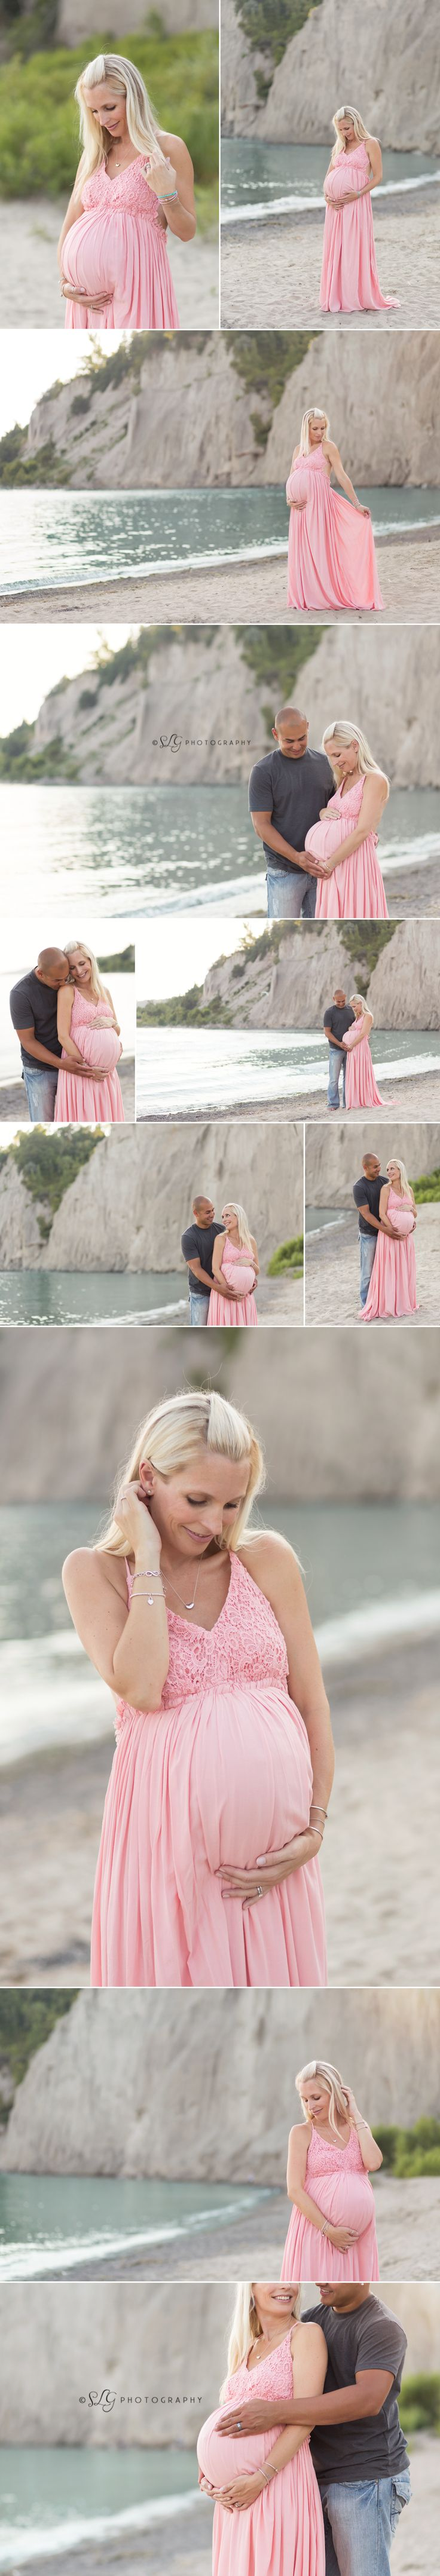 Beach Maternity Session www.slg-photography.com Toronto Maternity Photographer  #slgphotography